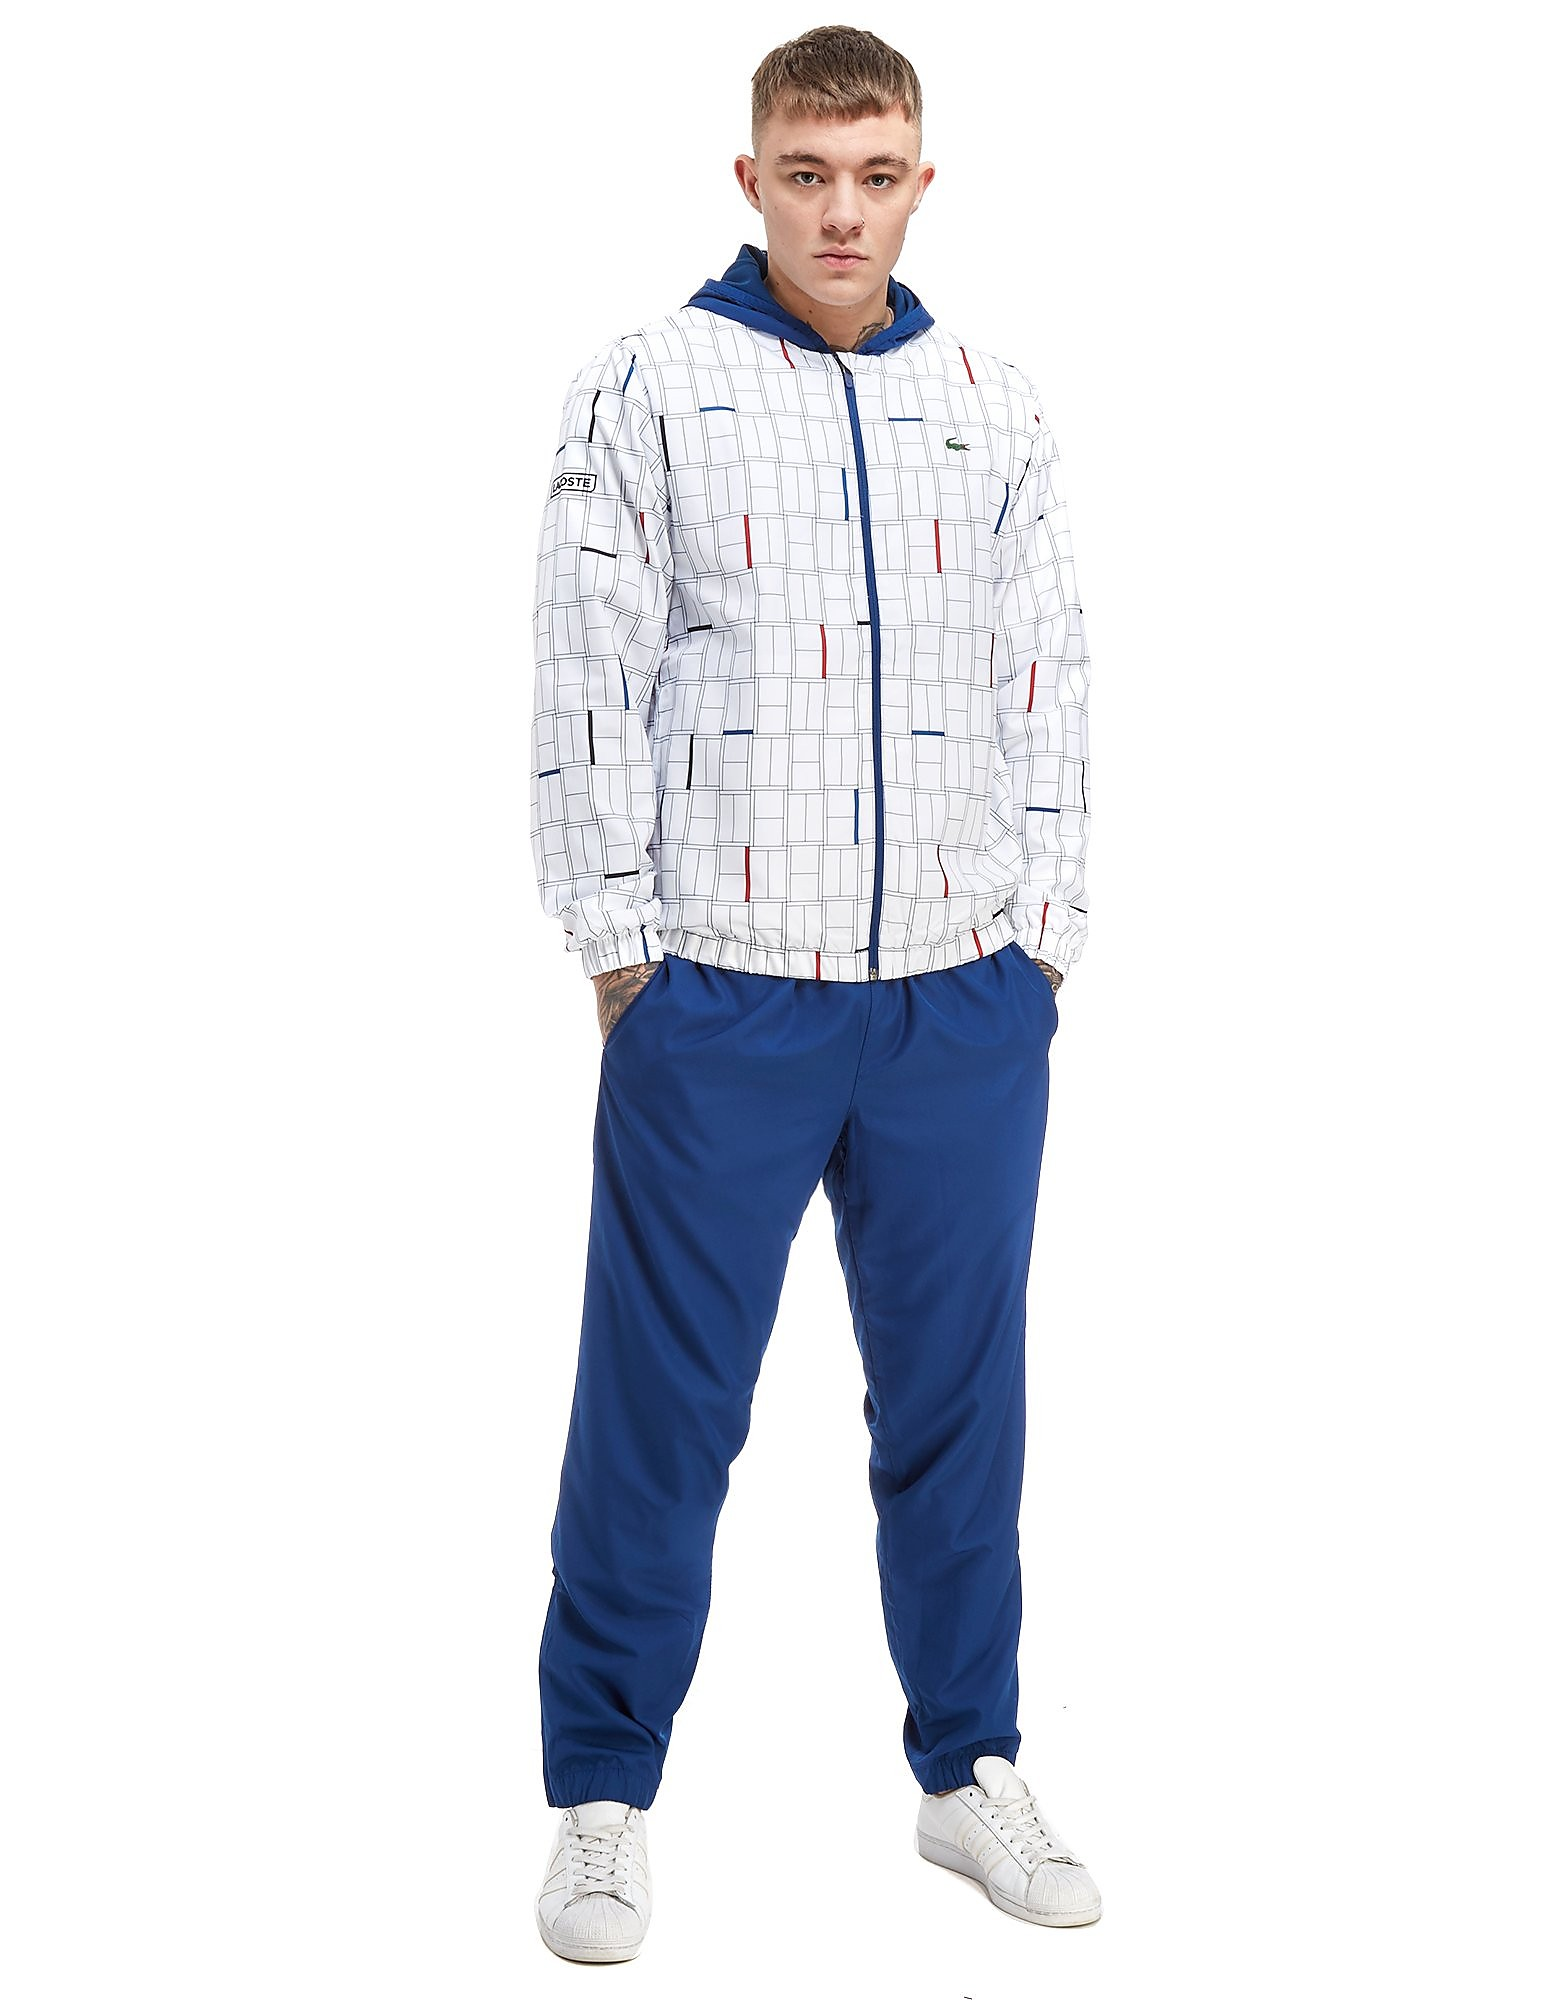 Lacoste Djokovic Grid Check Suit